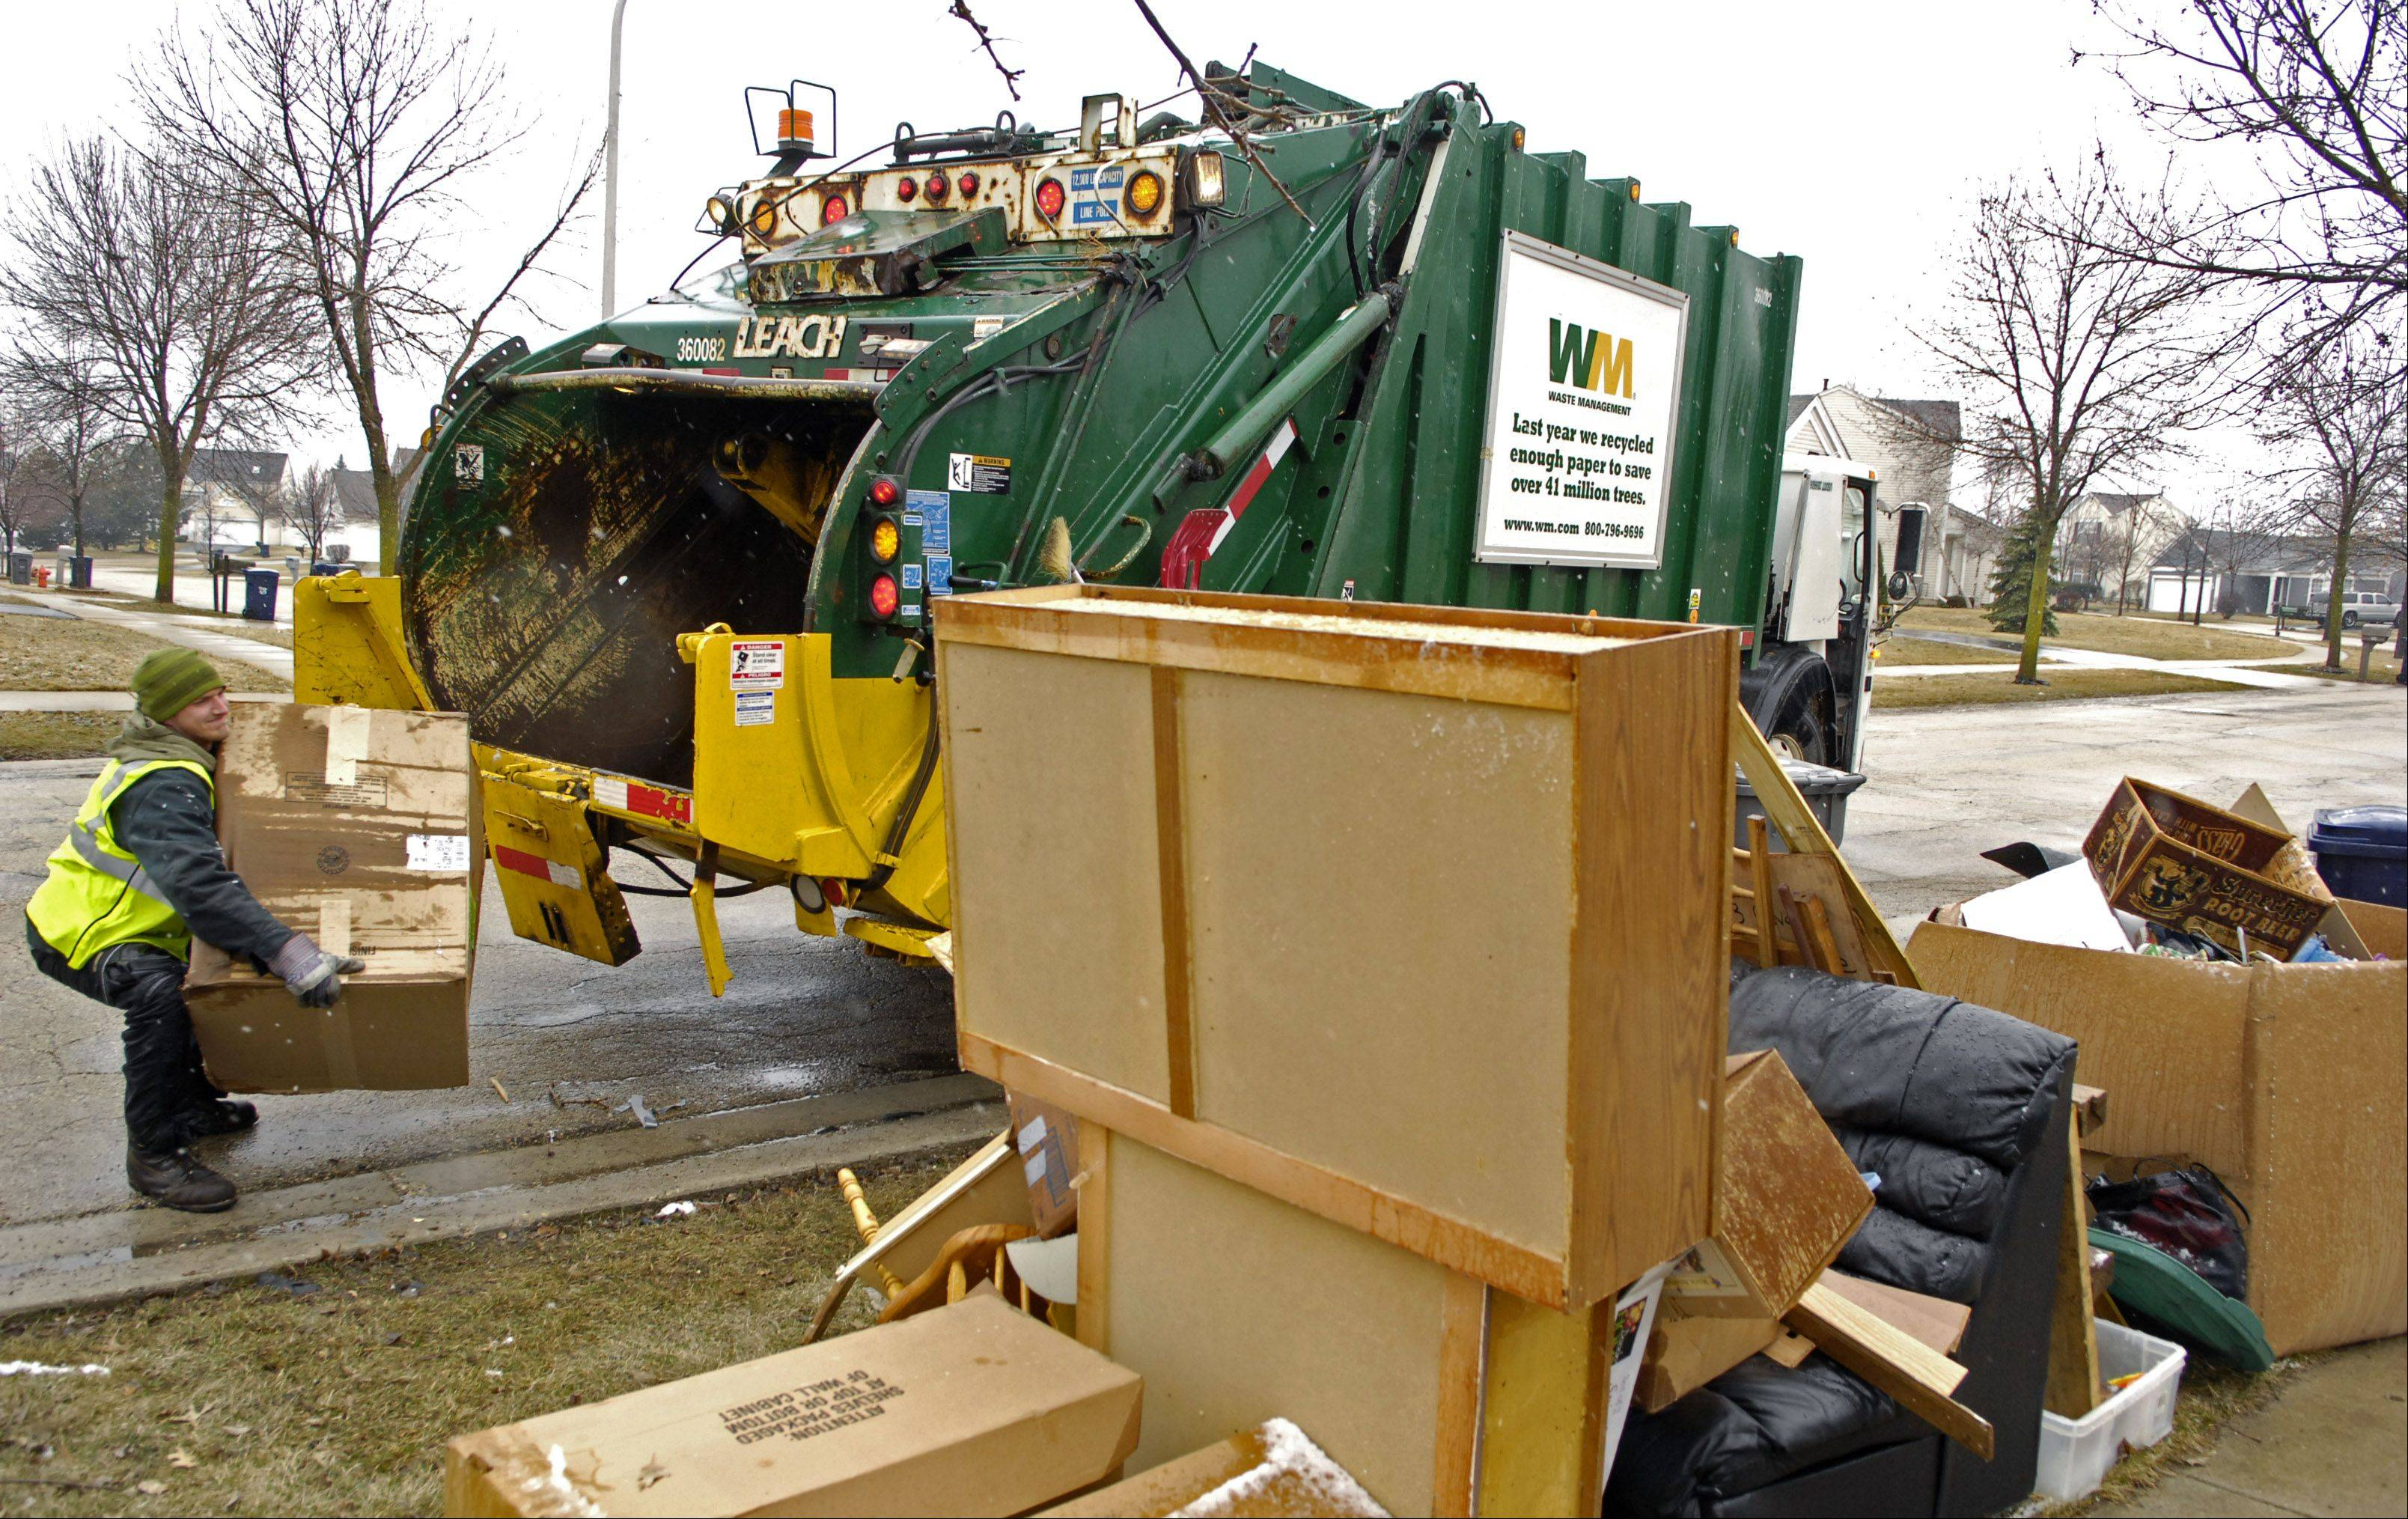 Lincolnshire residents could pay less for garbage removal under plans being weighed by the village board.